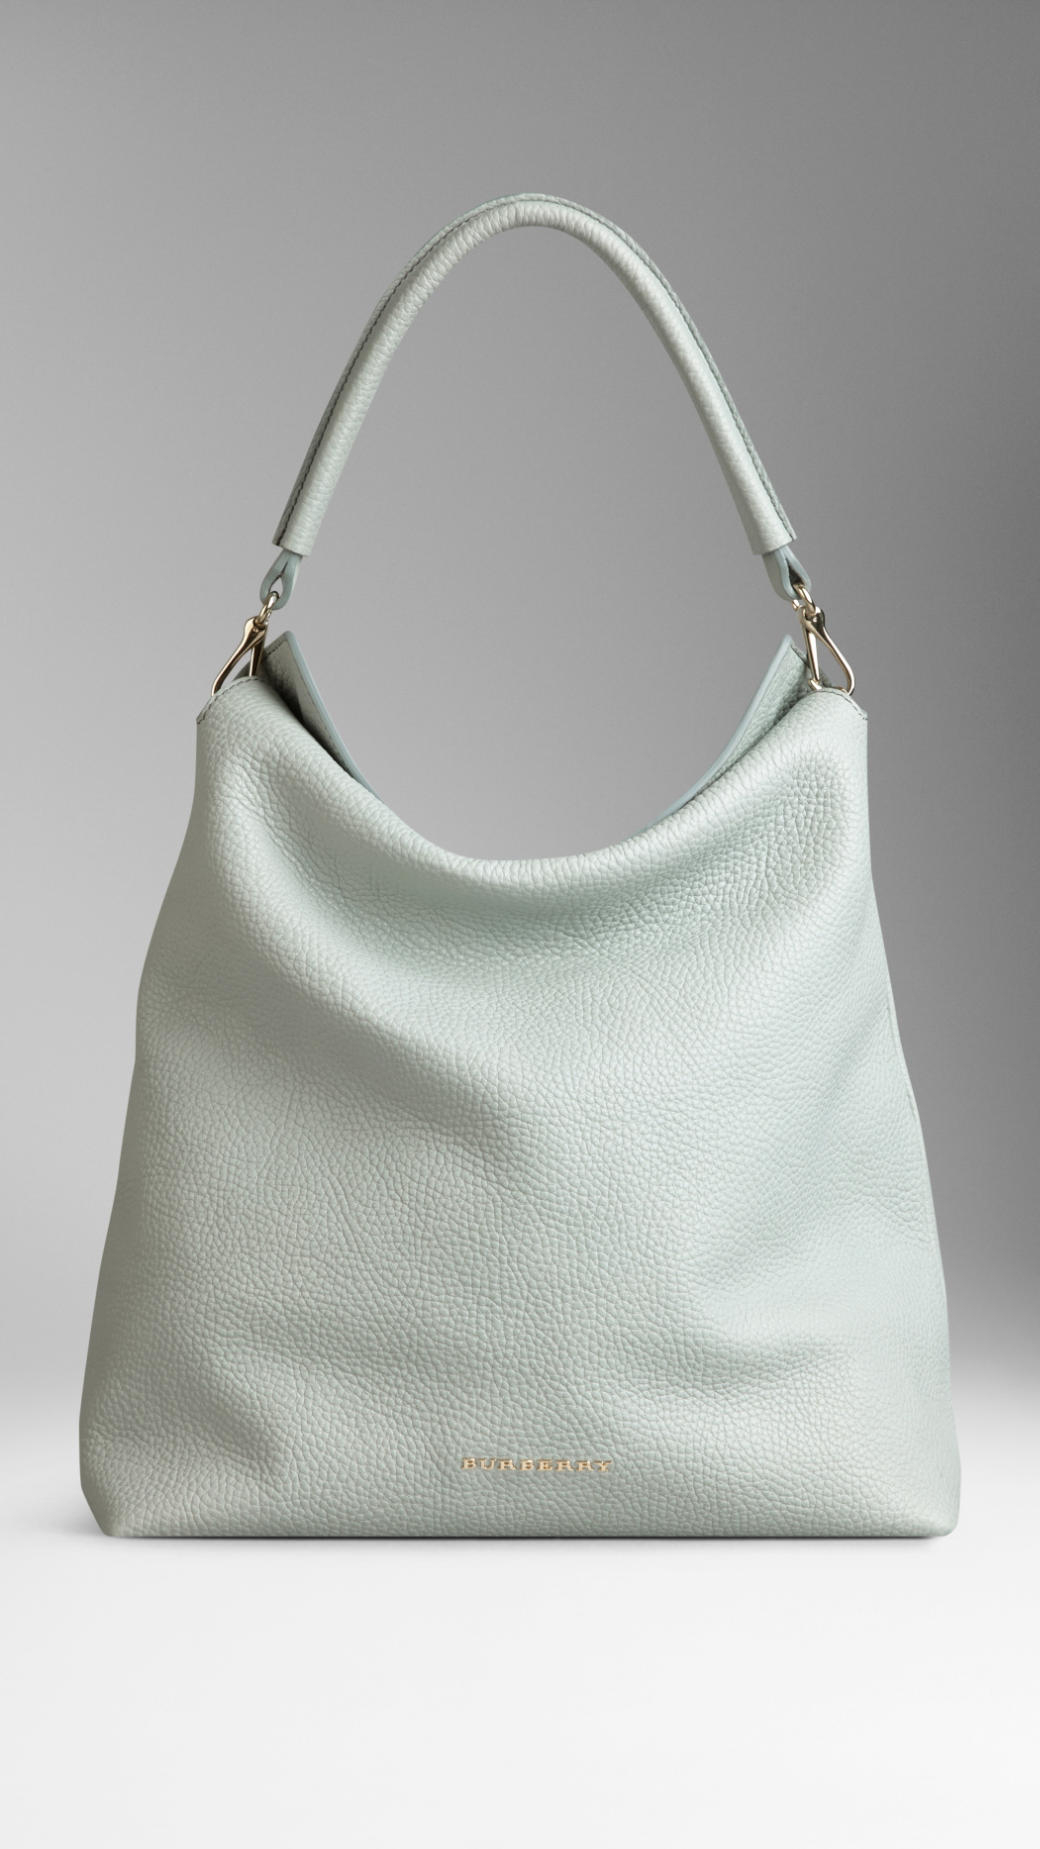 Burberry Medium Leather Hobo Bag in Blue | Lyst